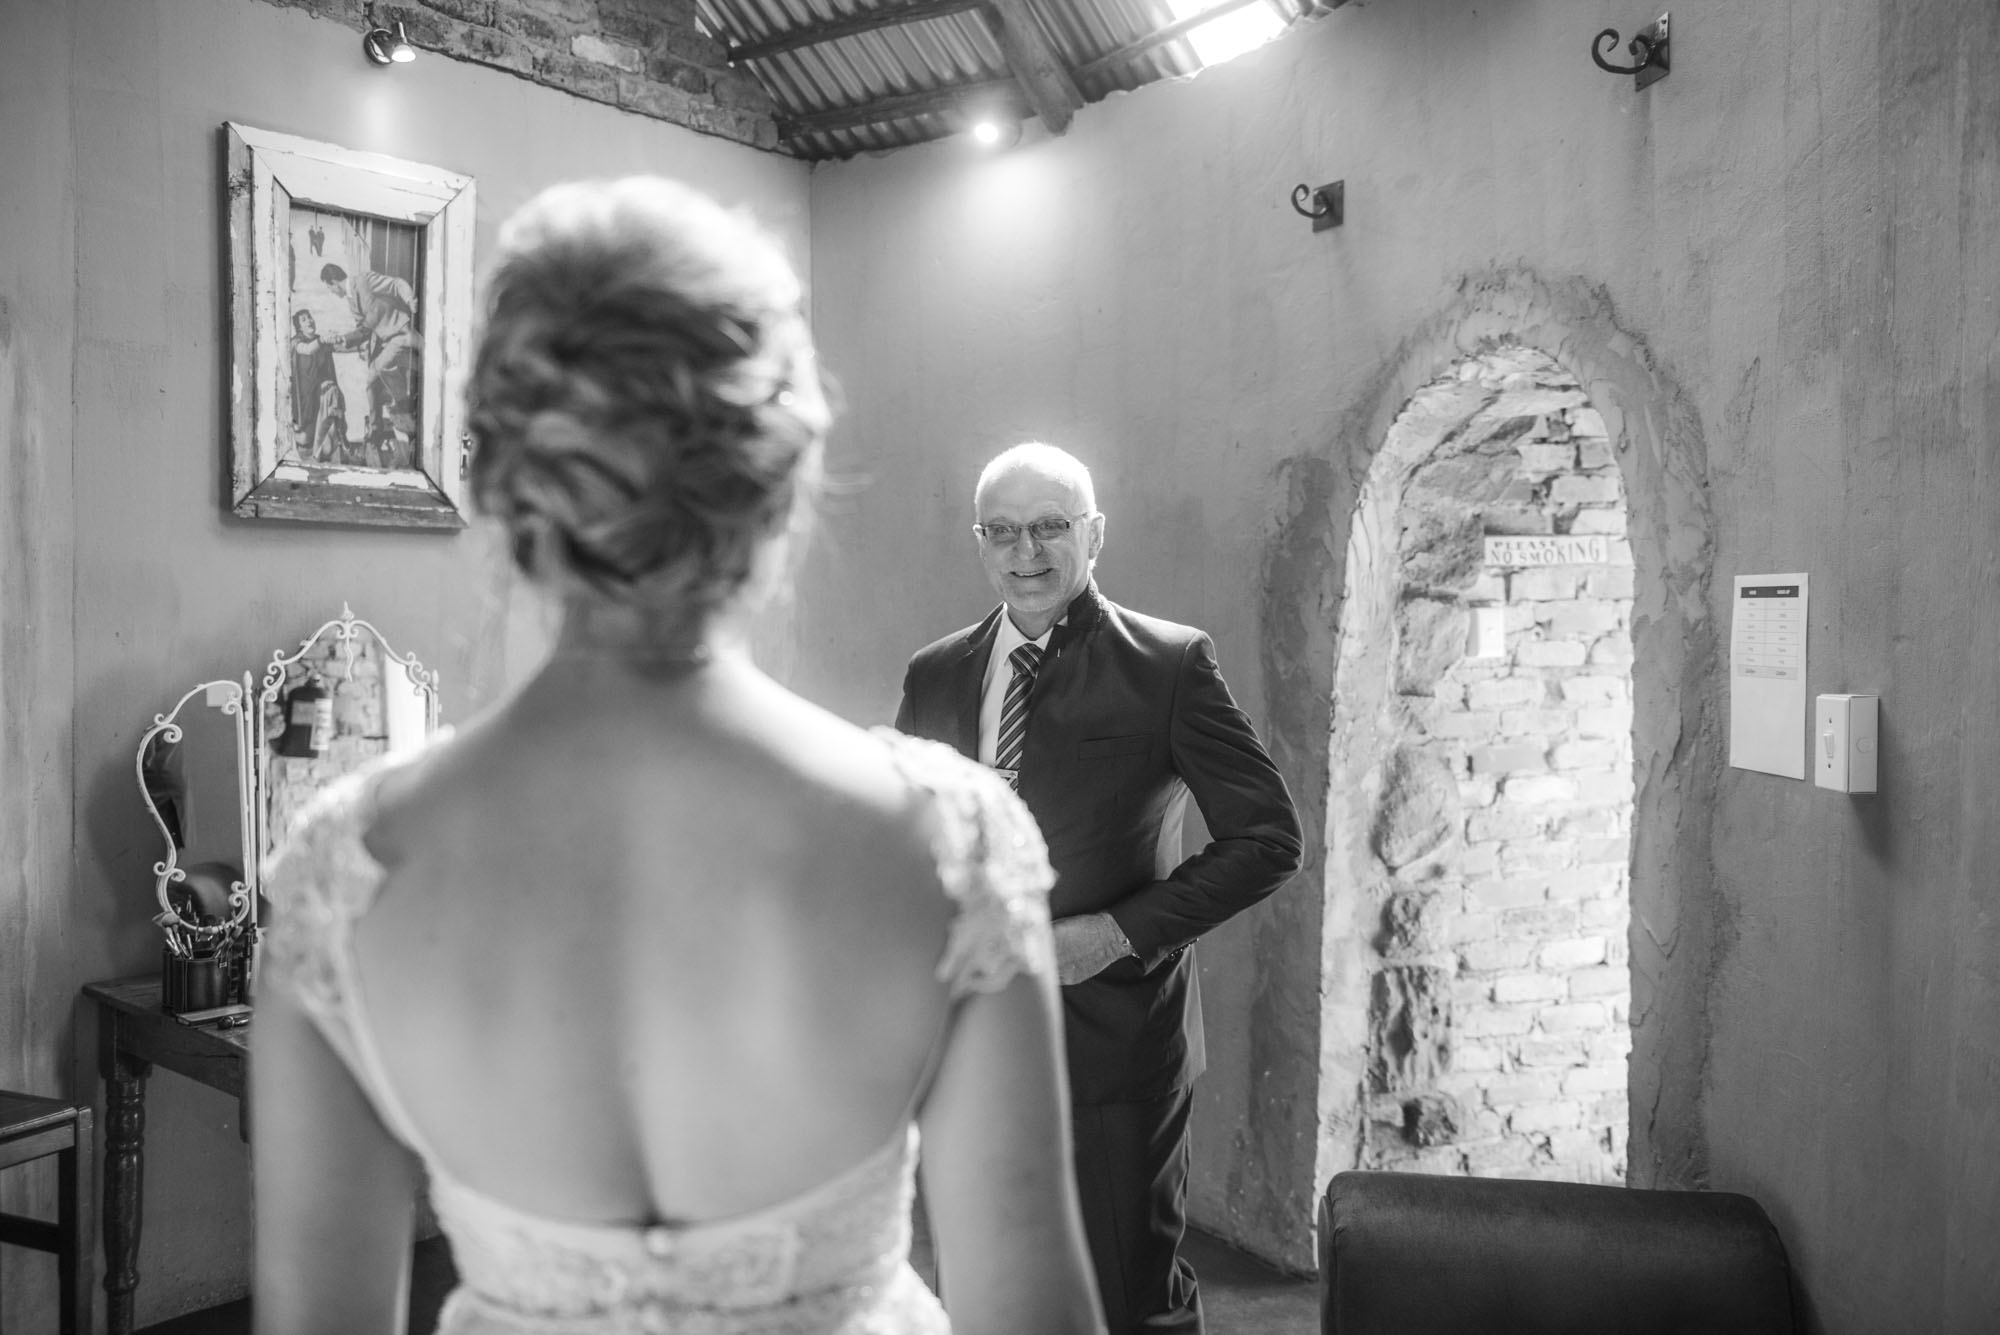 069-imperfect-perfection-wedding-venue069-imperfect-perfection-wedding-venue_a.jpg